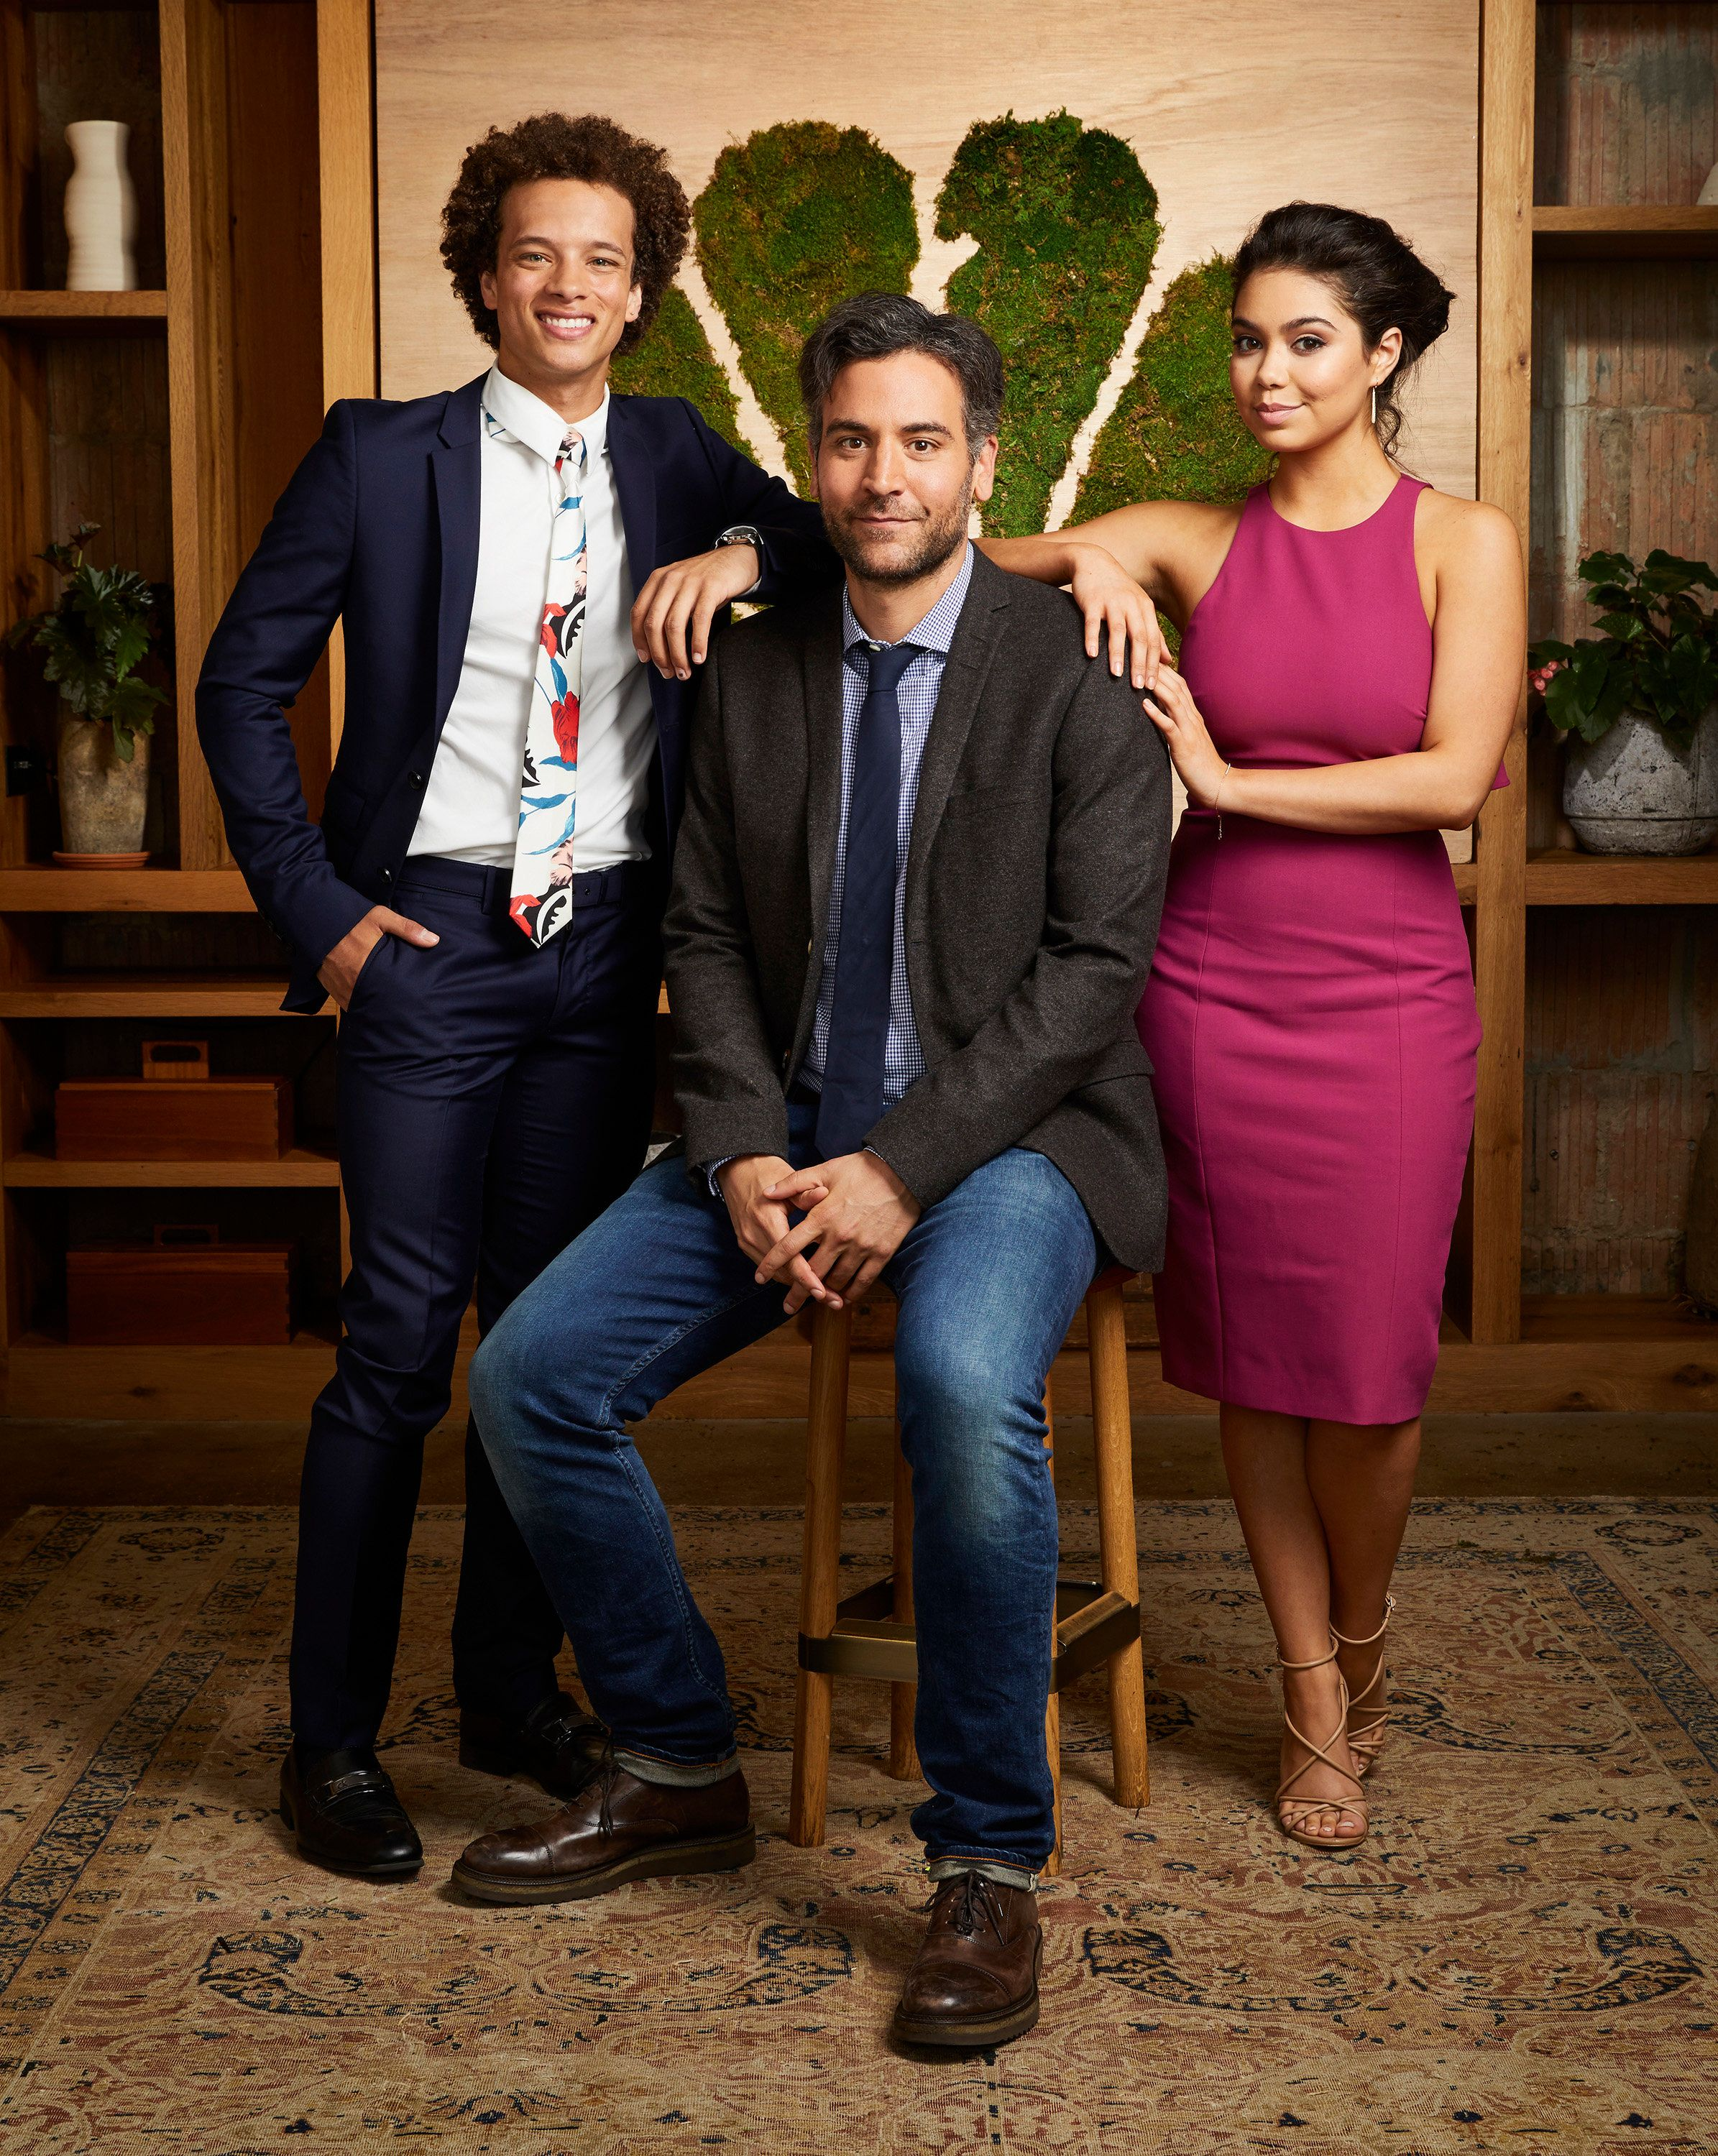 NBCUNIVERSAL EVENTS -- New Talent Mixer, NBC Portrait Studio -- Pictured: (l-r)  Damon J. Gillespie, Josh Radnor, Auli'l Cravalho, 'Rise'-- (Photo by: Patrick Randak/NBC/NBCU Photo Bank via Getty Images)